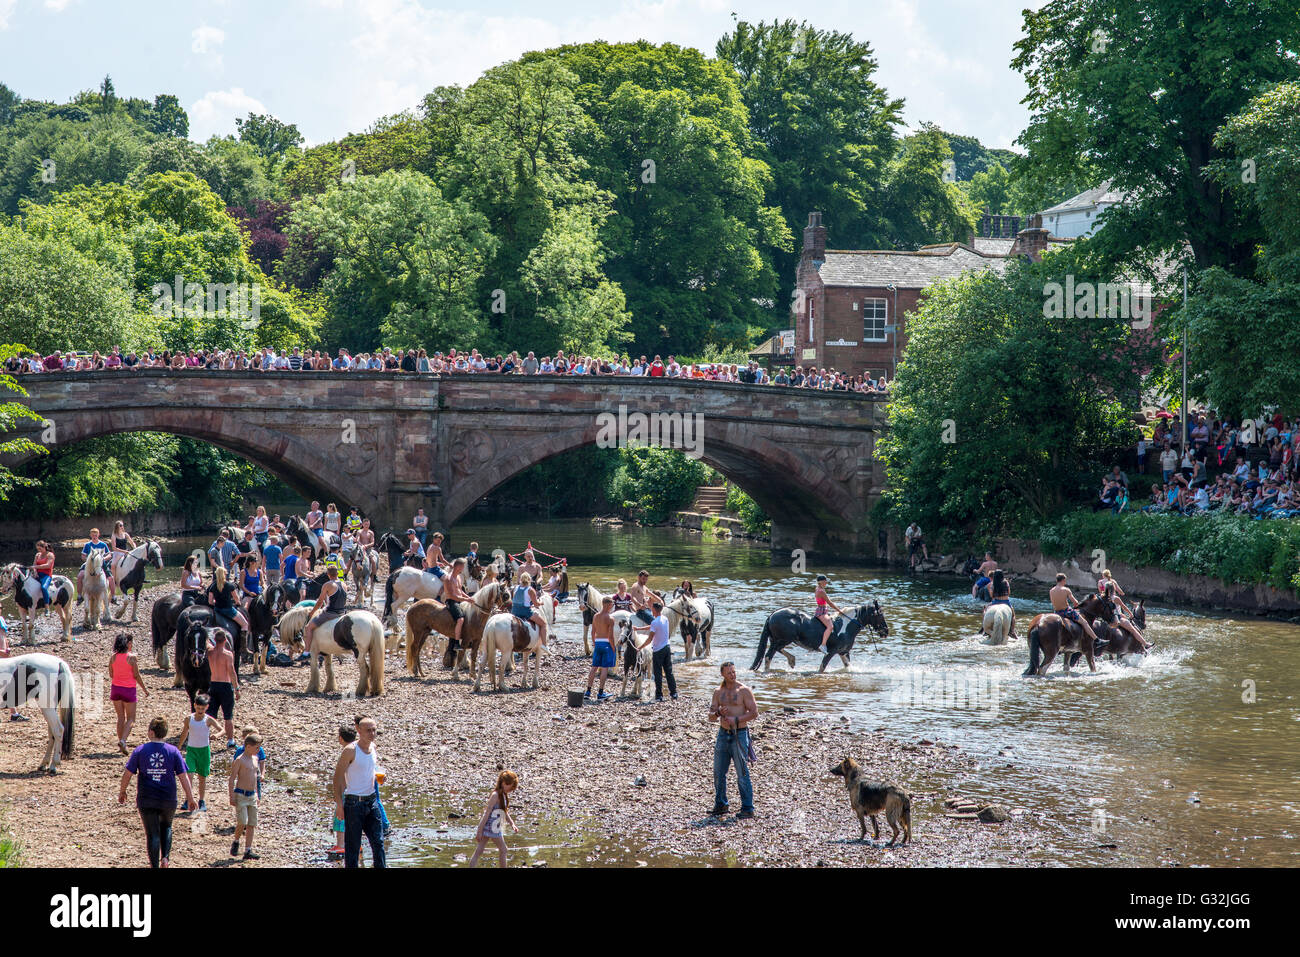 Appleby In Westmorland Cumbria UK Crowds Gather To Watch The Traditional Washing Of Horses River Eden At Horse